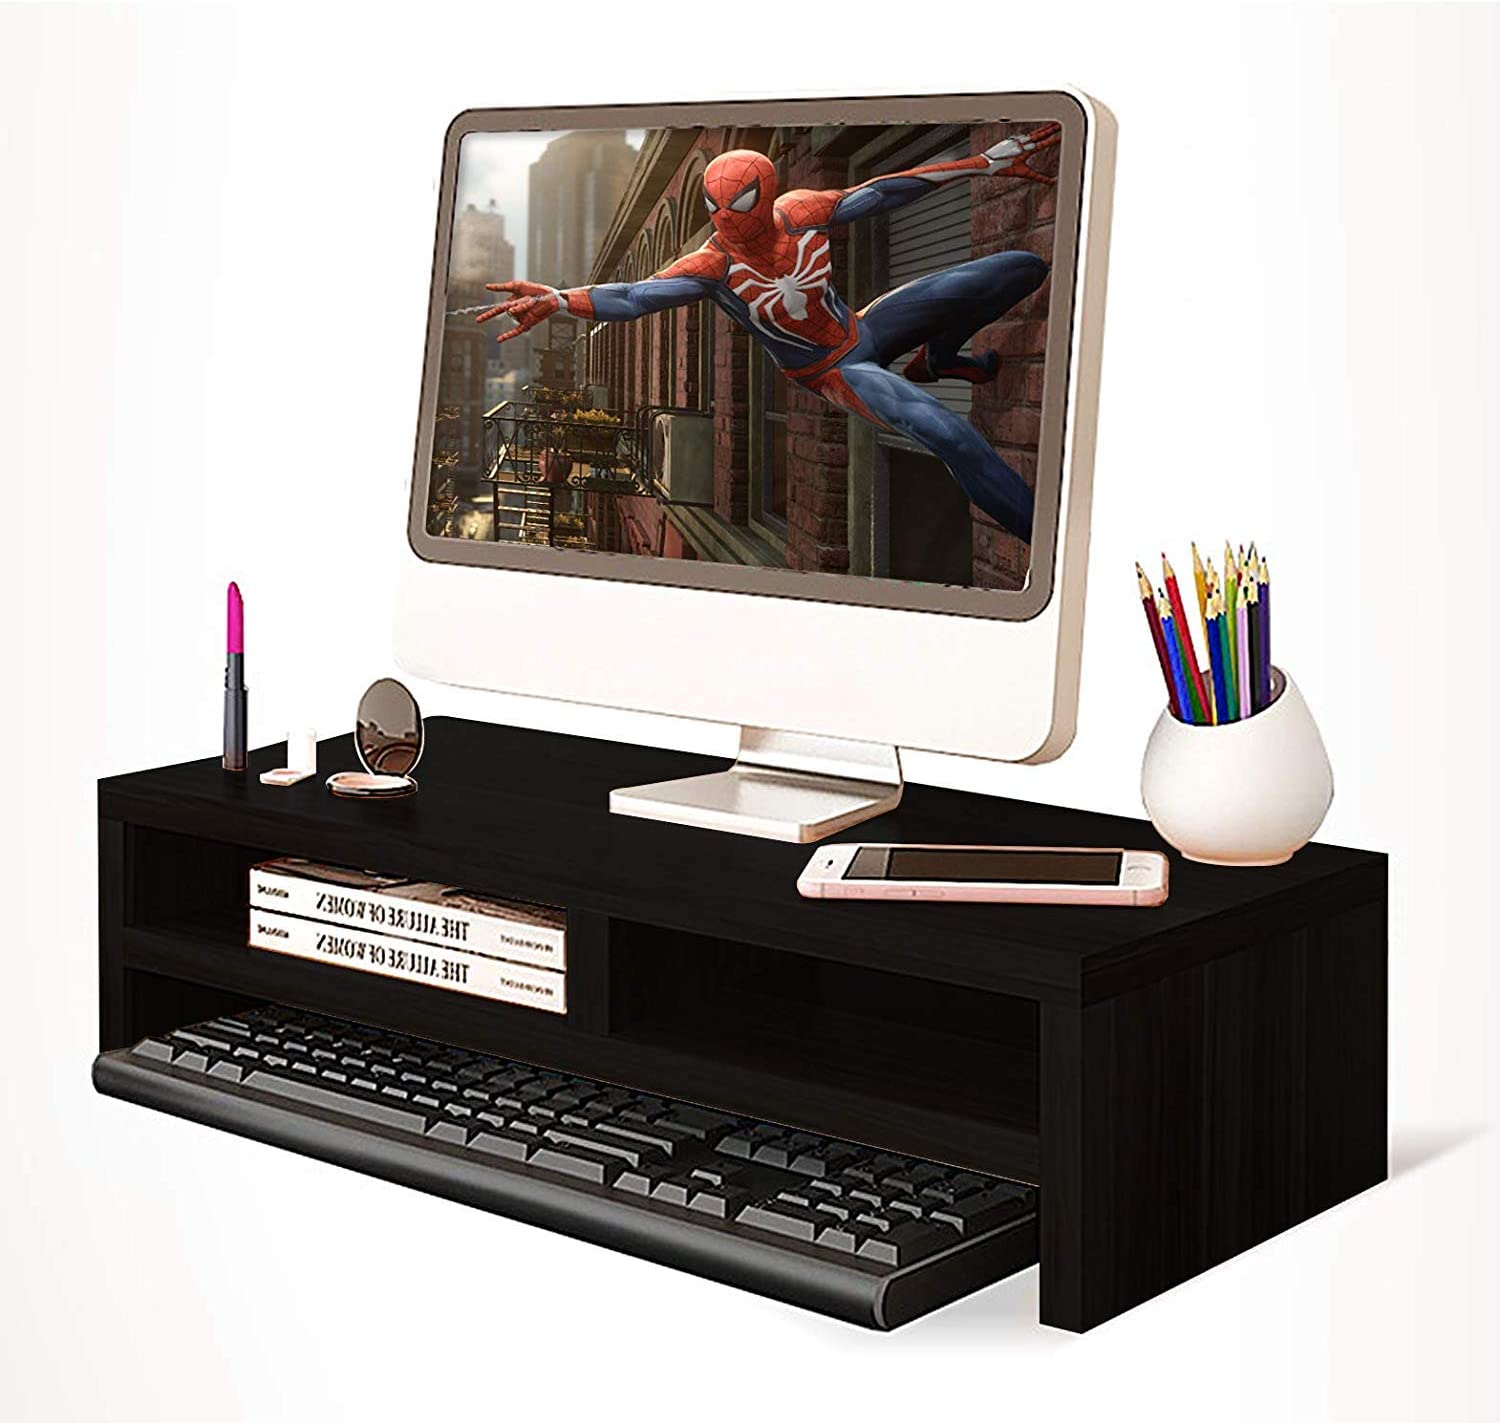 """TY arts & culture - Computer Monitor Stand 21.5"""" inch 2 Tiers Monitor Stand Computer, iMac, Printer, Laptop 